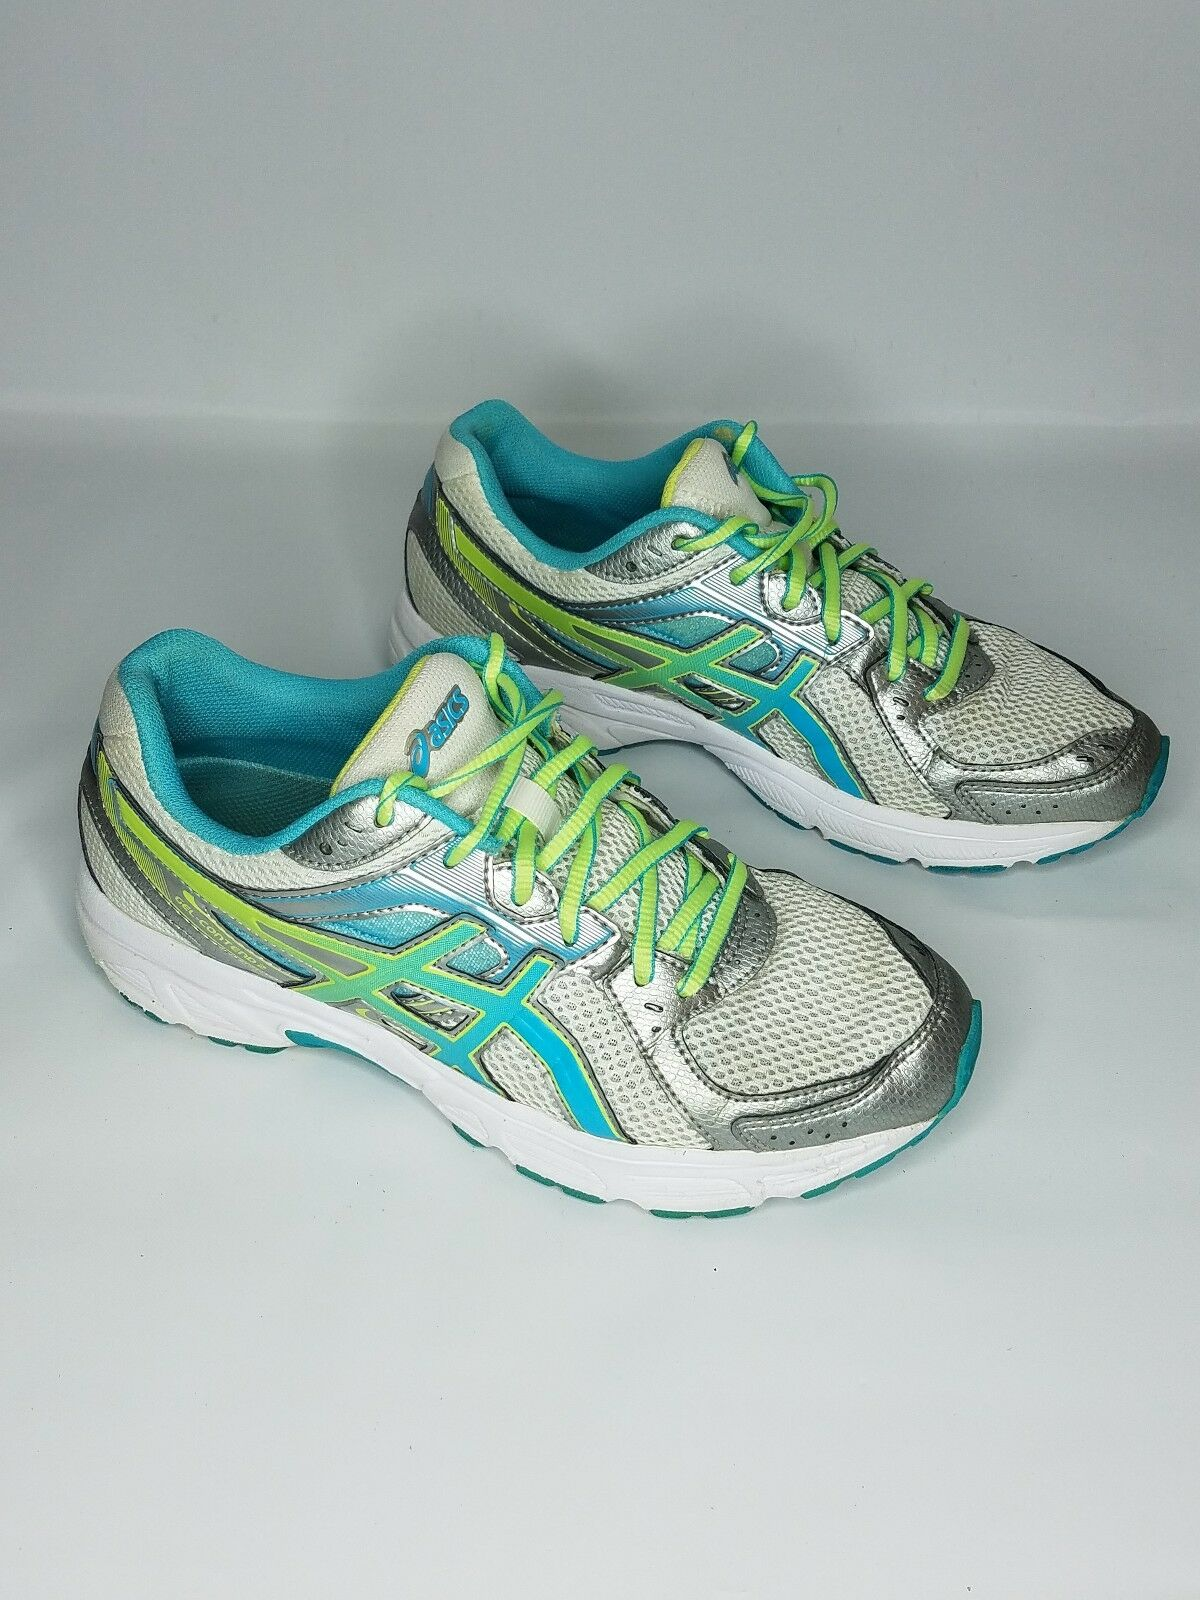 Asics Gel Contend 2 Running shoes Womens Size 9.5 White Teal Silver T474N